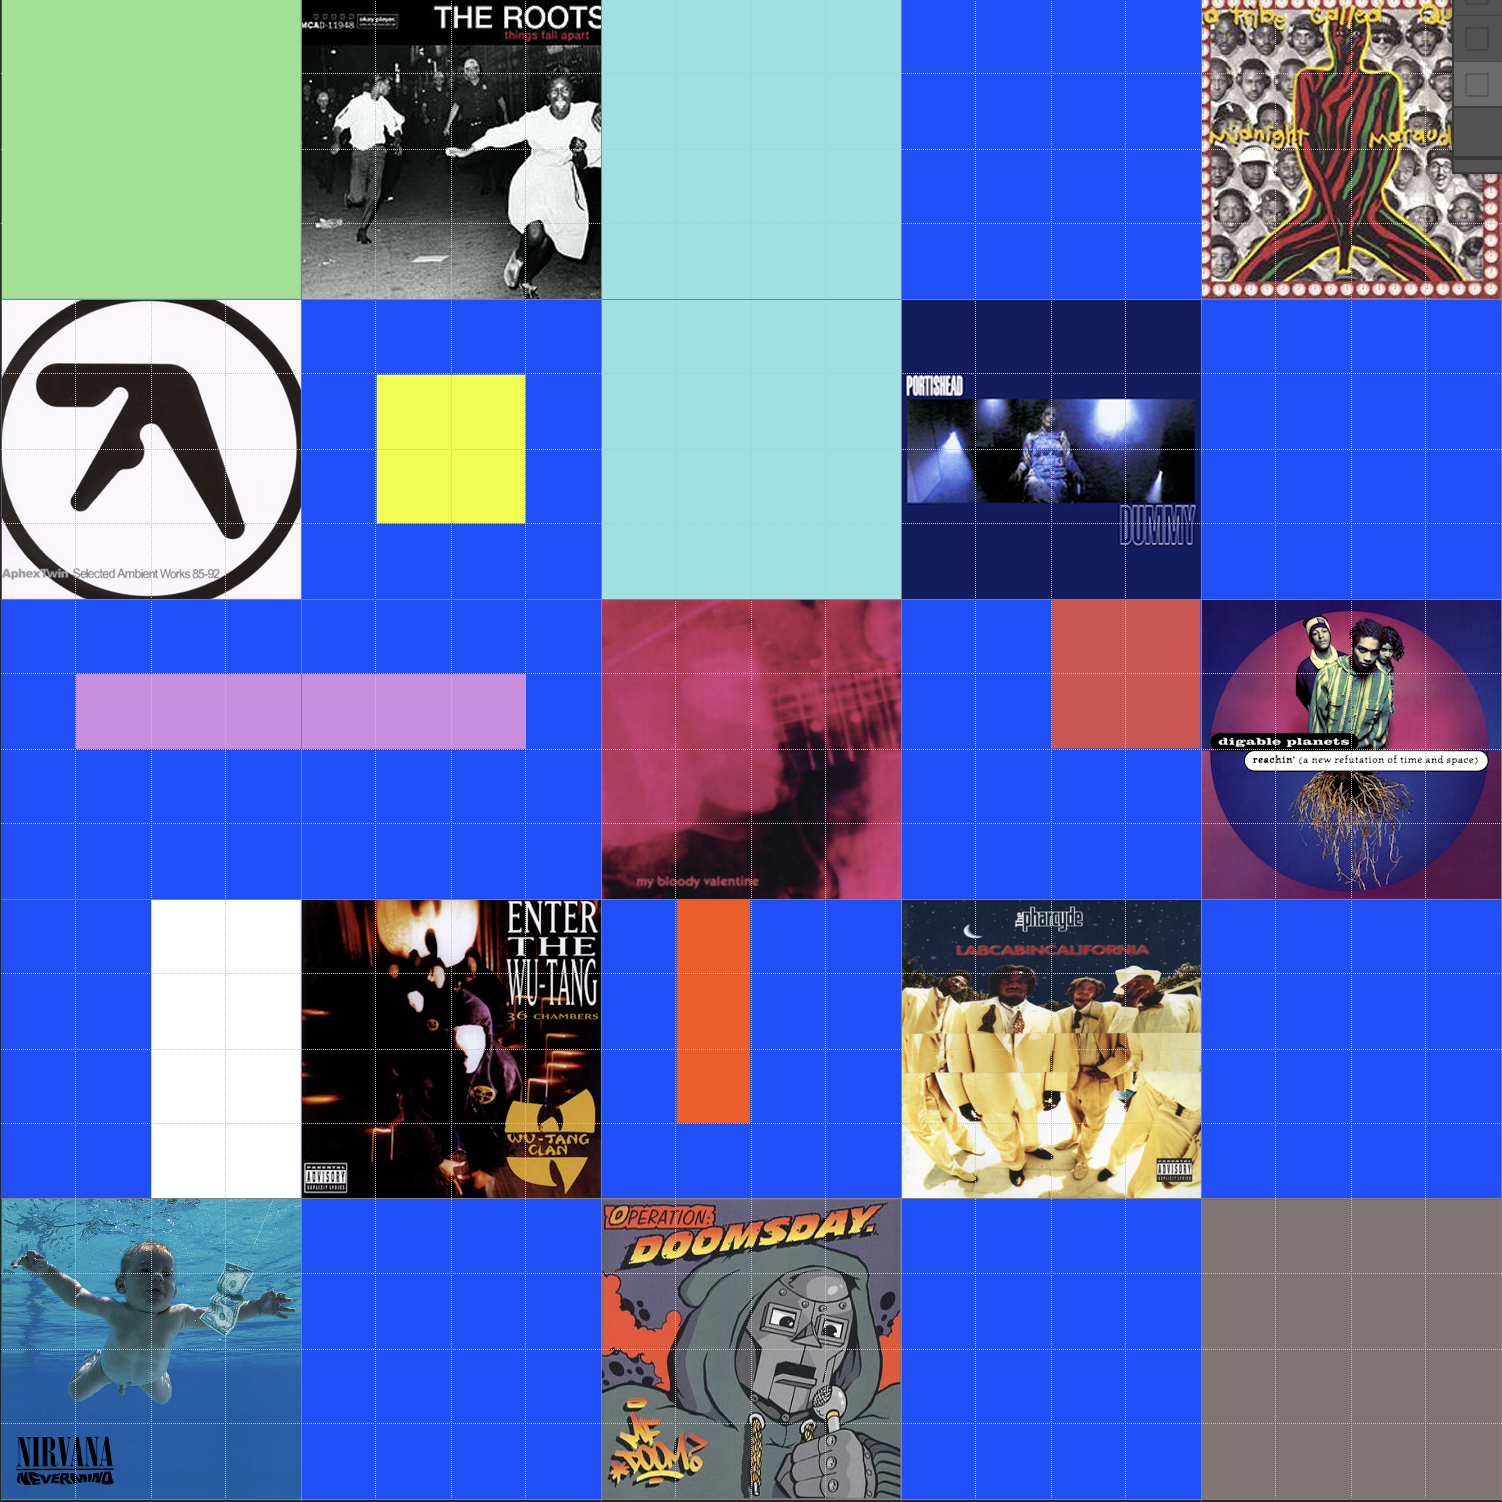 A compiled display of the album covers featured in this article.